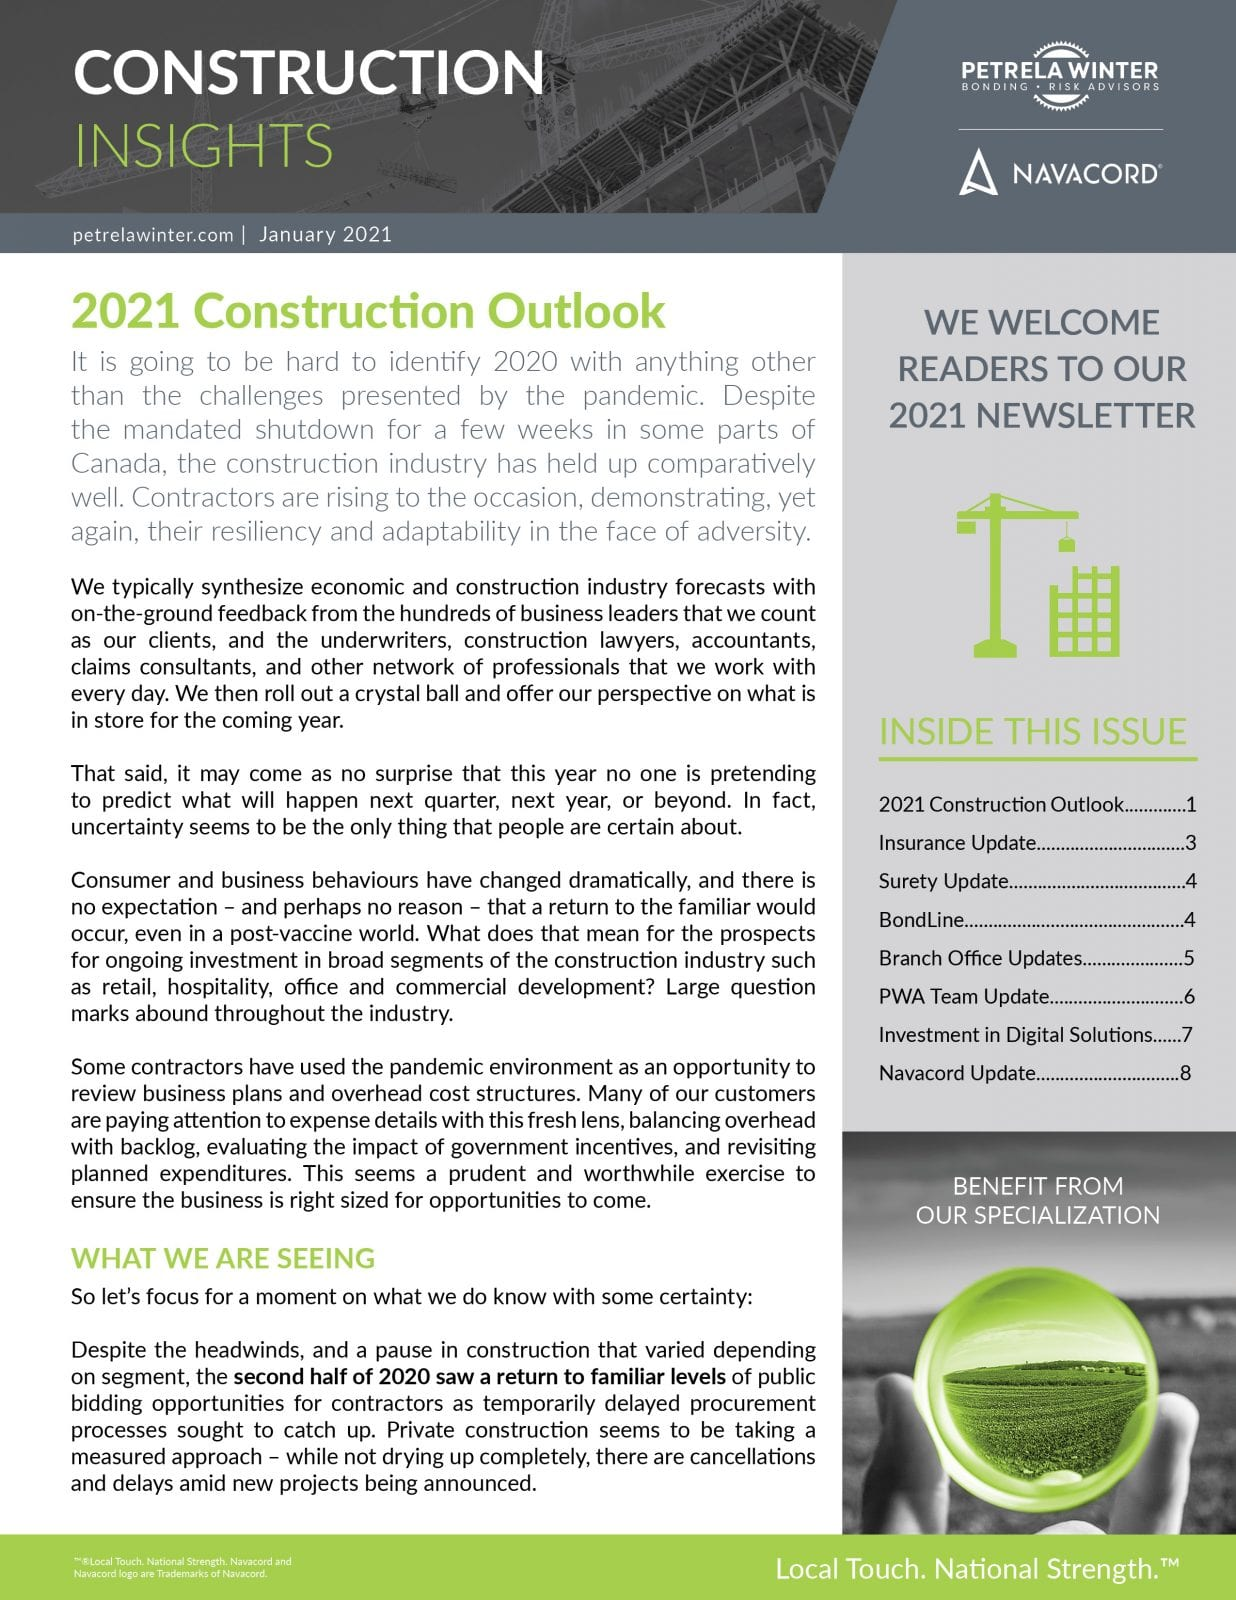 2021 Construction Outlook